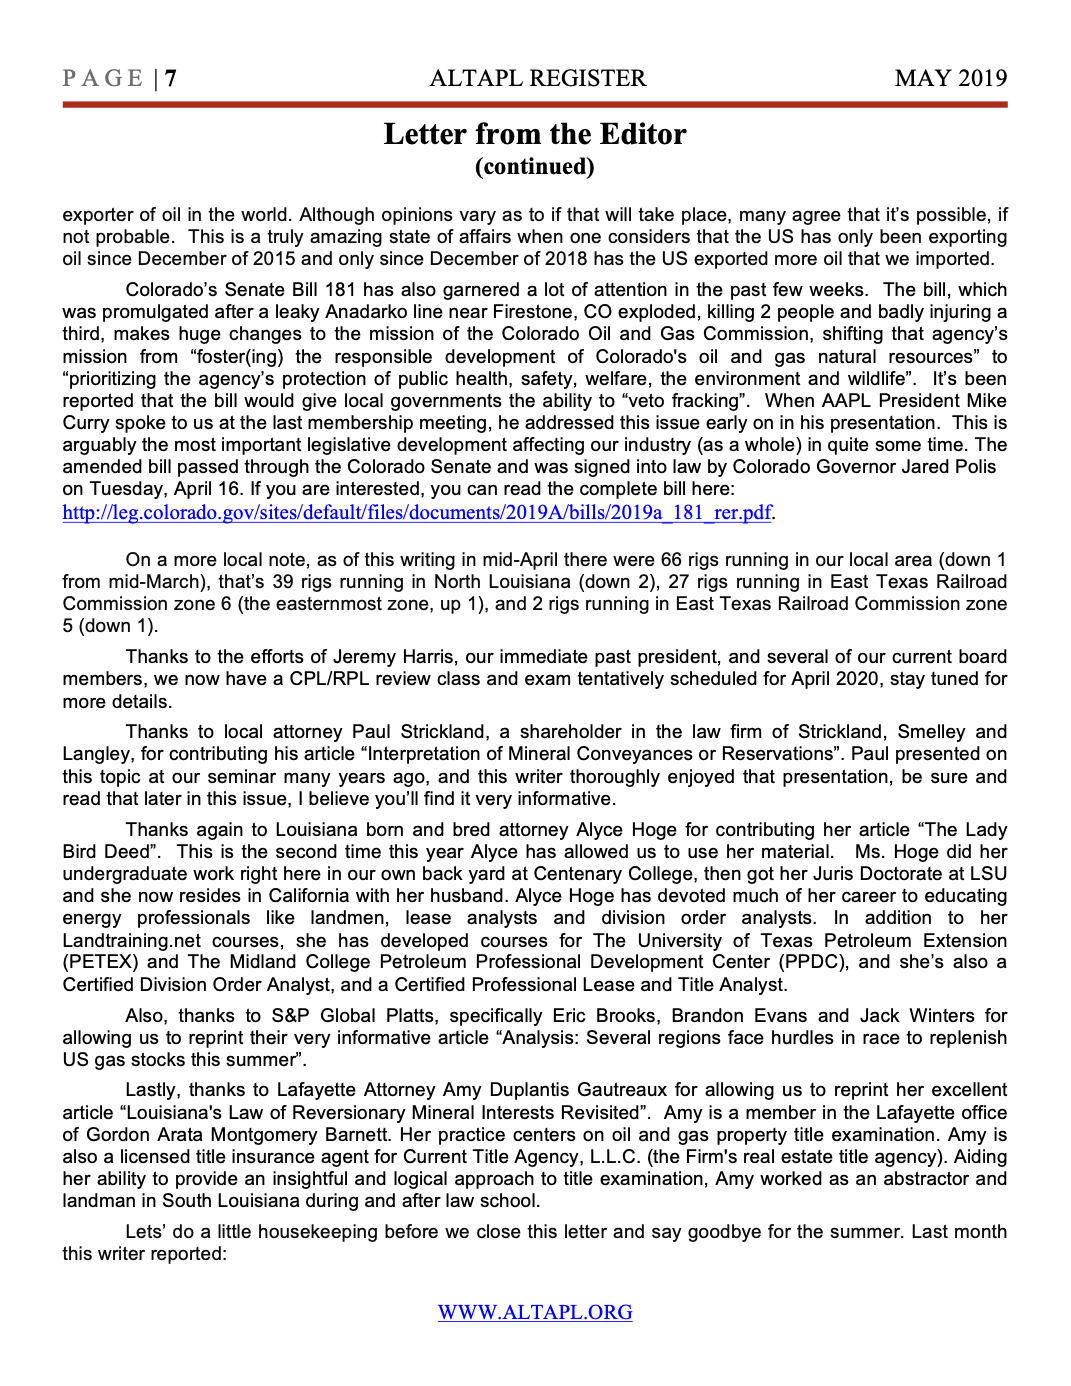 ALTAPL Register May 2019 Page 7.jpg